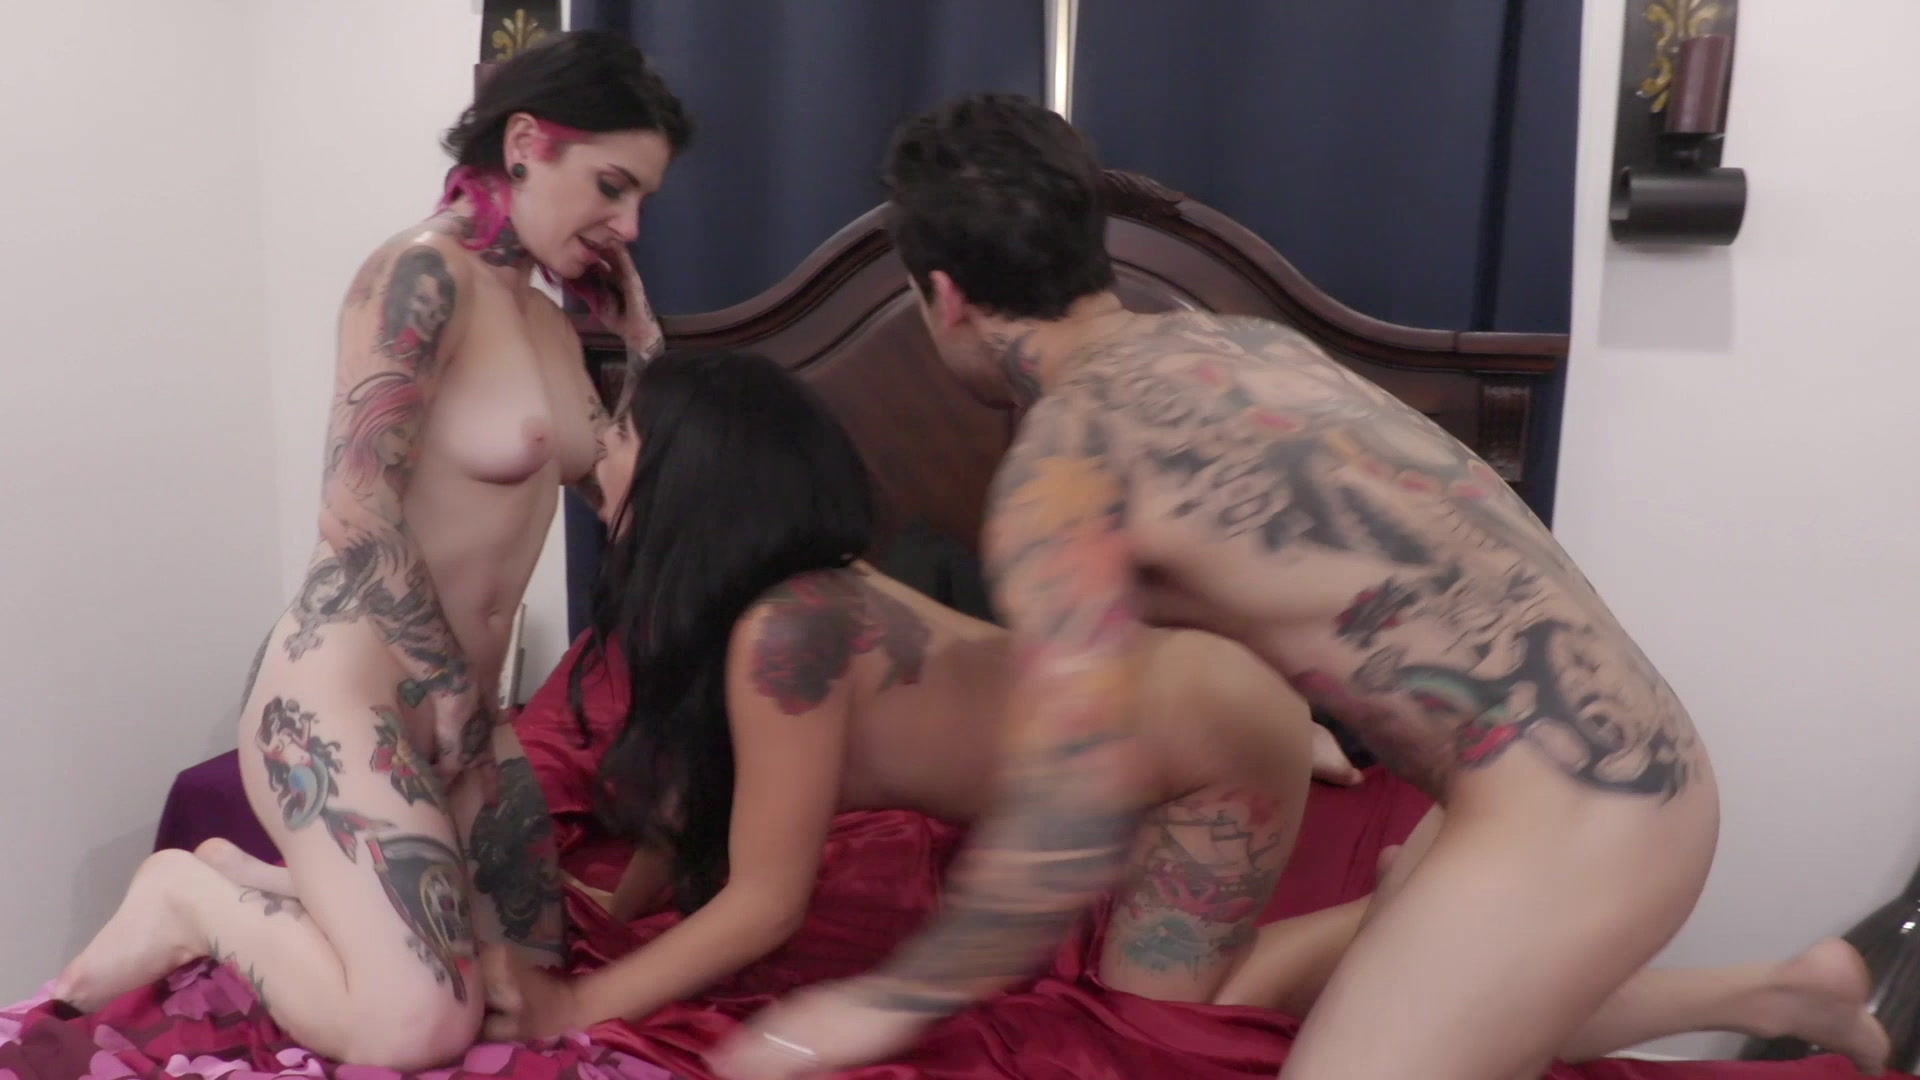 Scene with Joanna Angel, Small Hands and Gina Valentina - image 16 out of 20